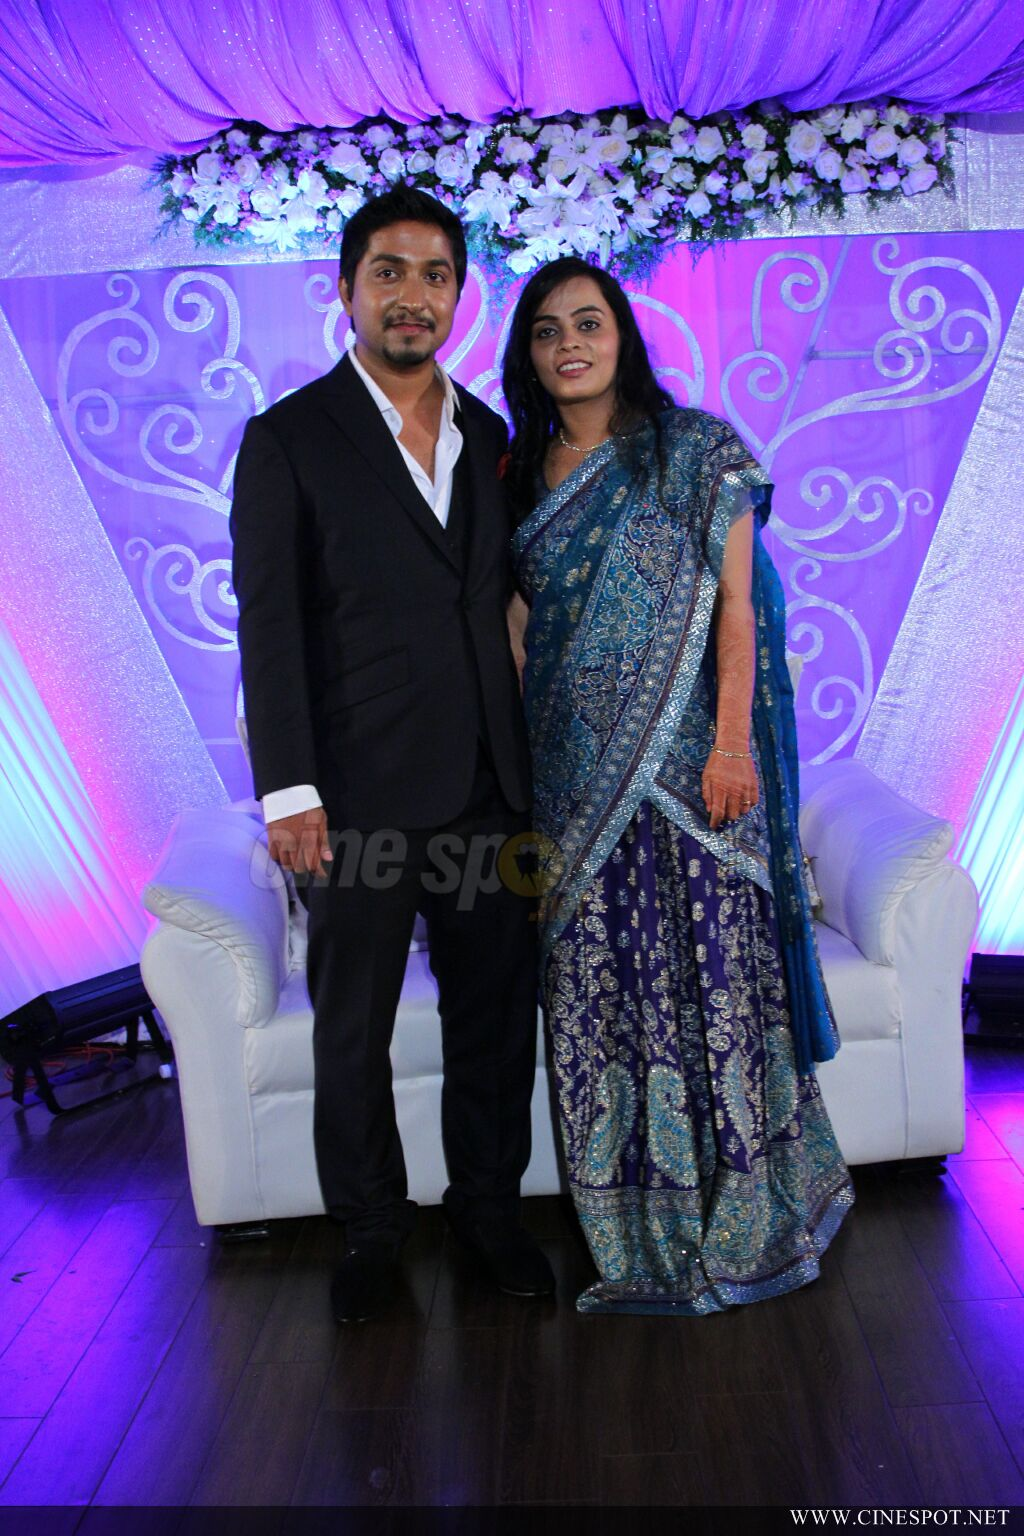 Vineeth sreenivasan wedding reception photos (5)